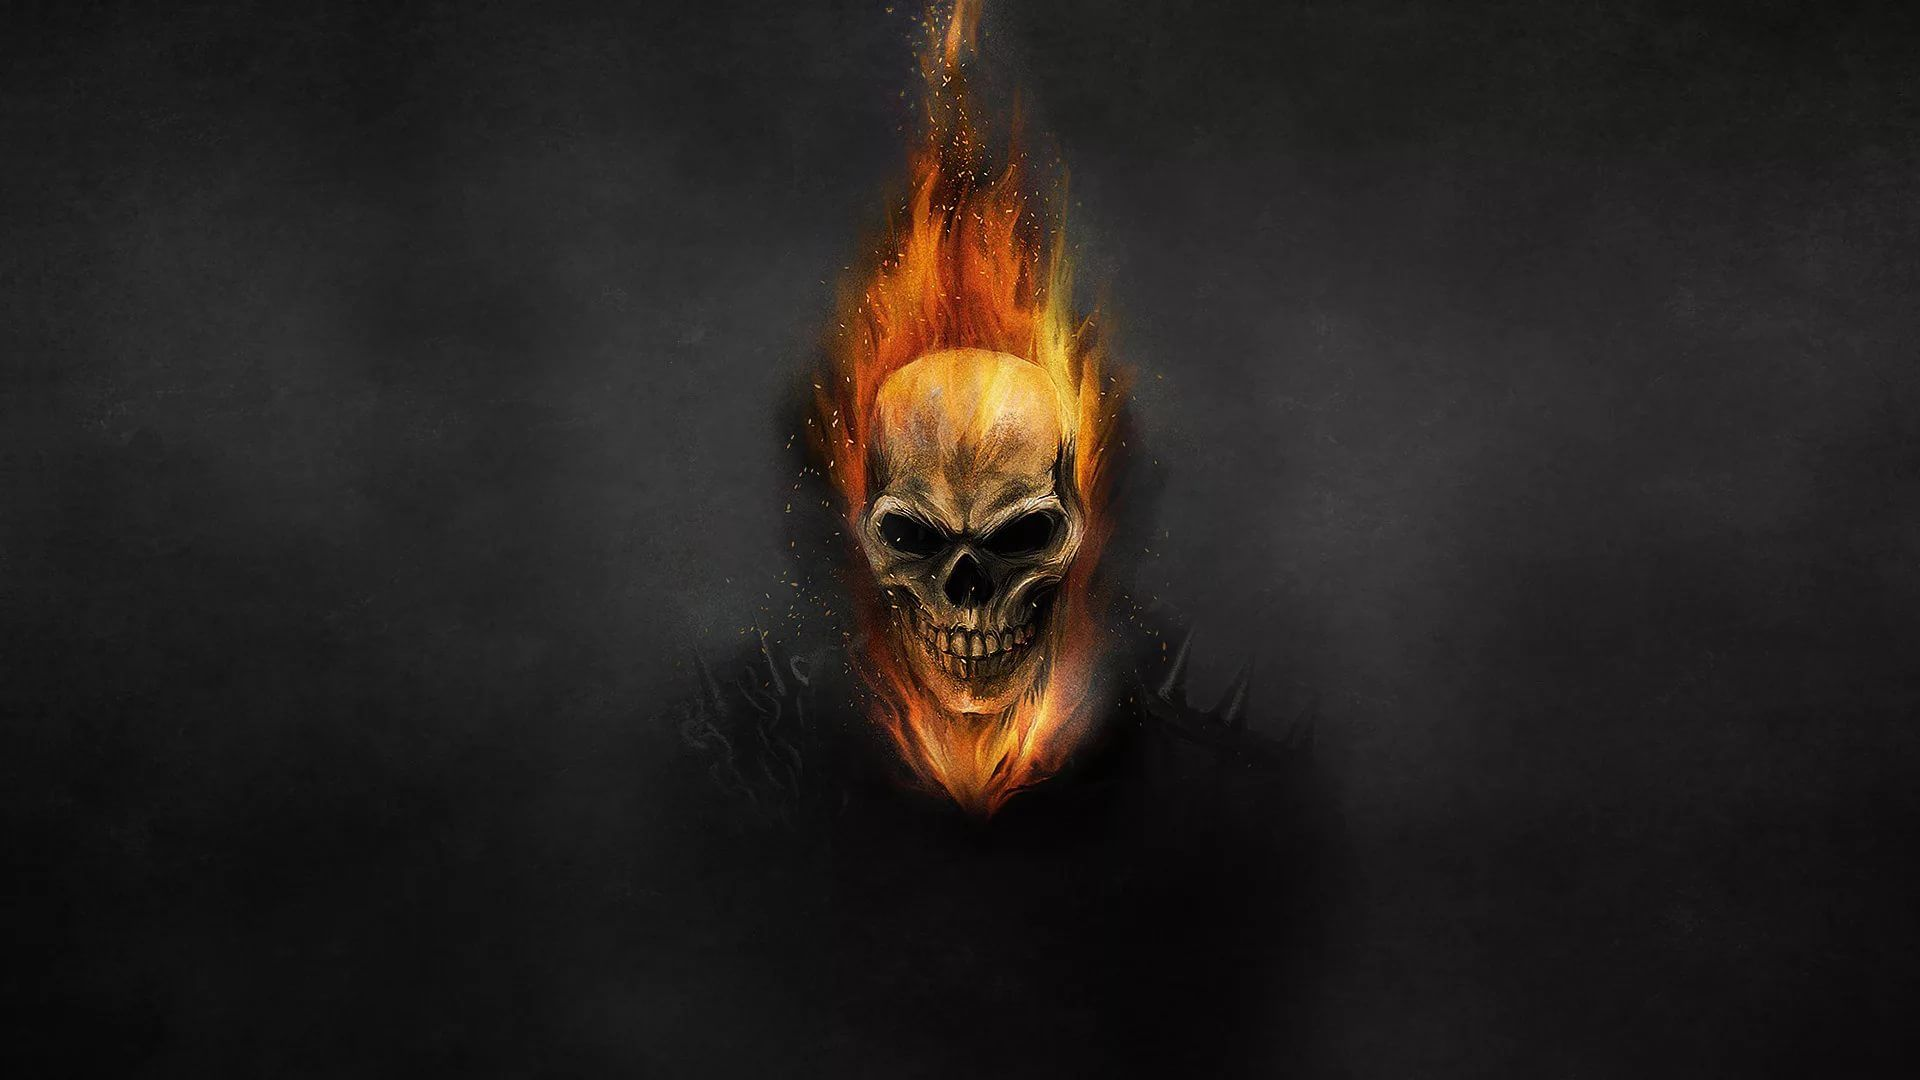 Flaming Skull wallpaper picture hd